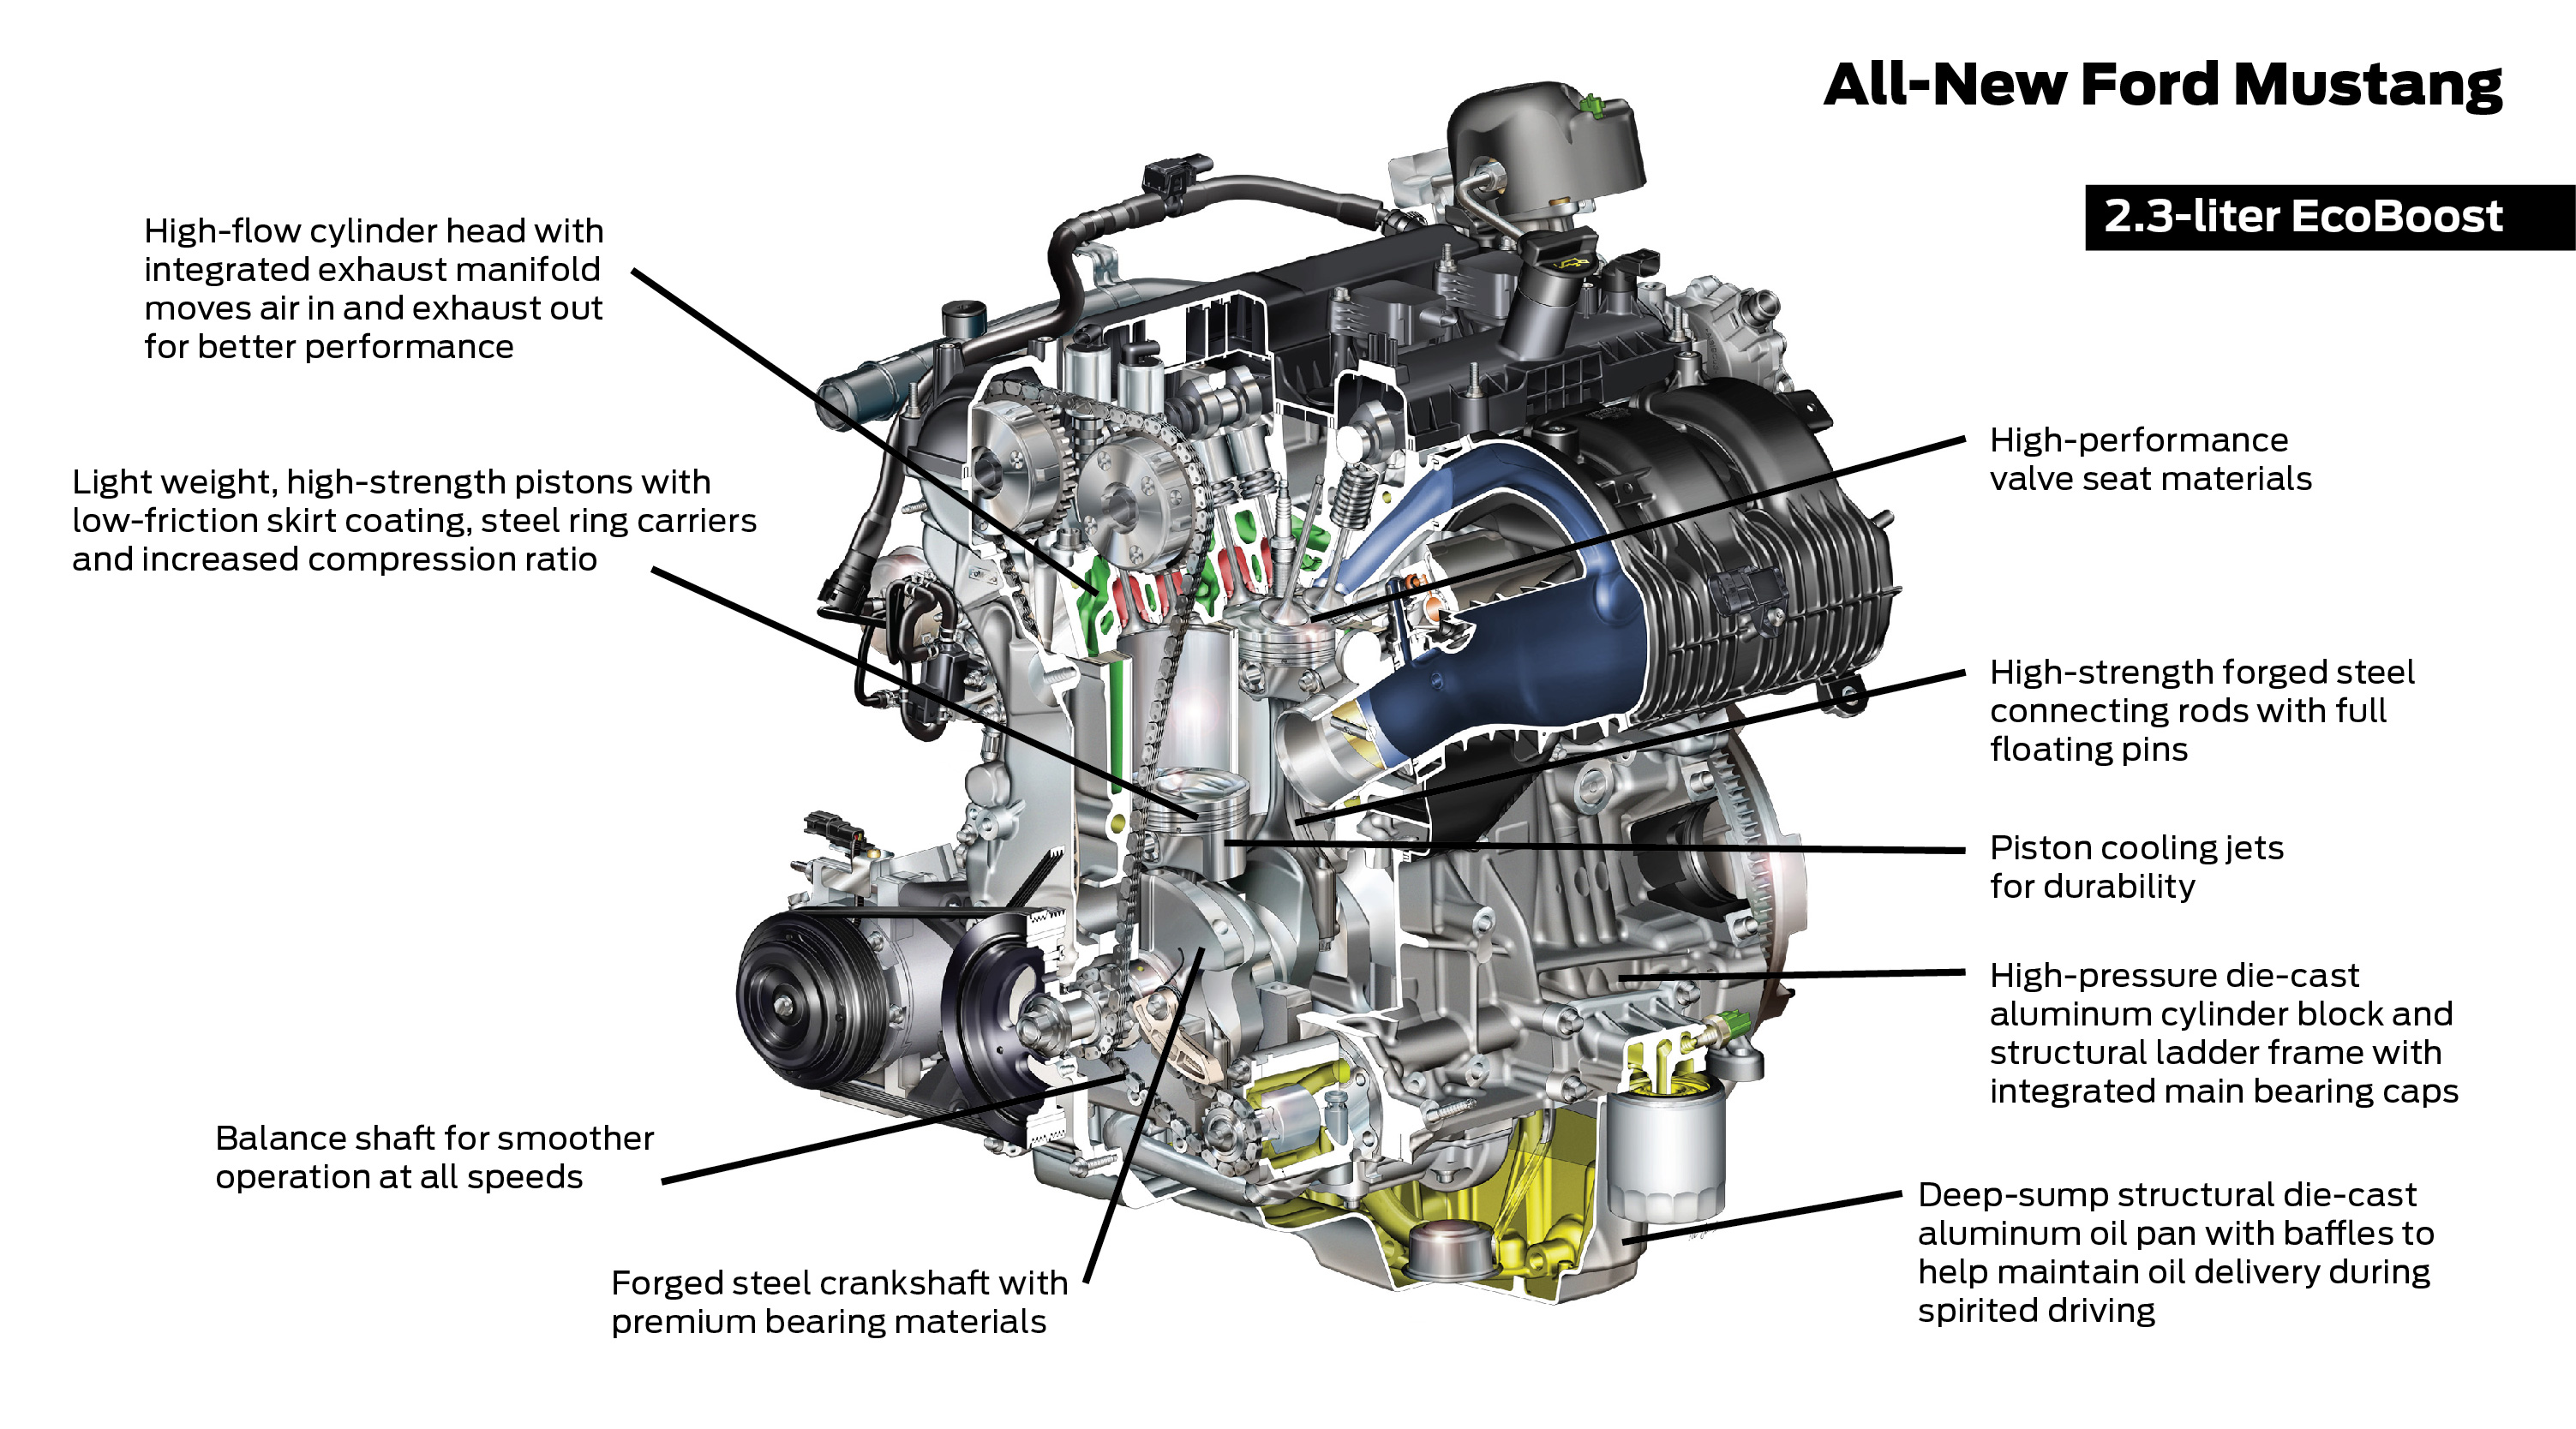 A Simple Guide to the 2015 Ford Mustang 2.3-liter EcoBoost Engine